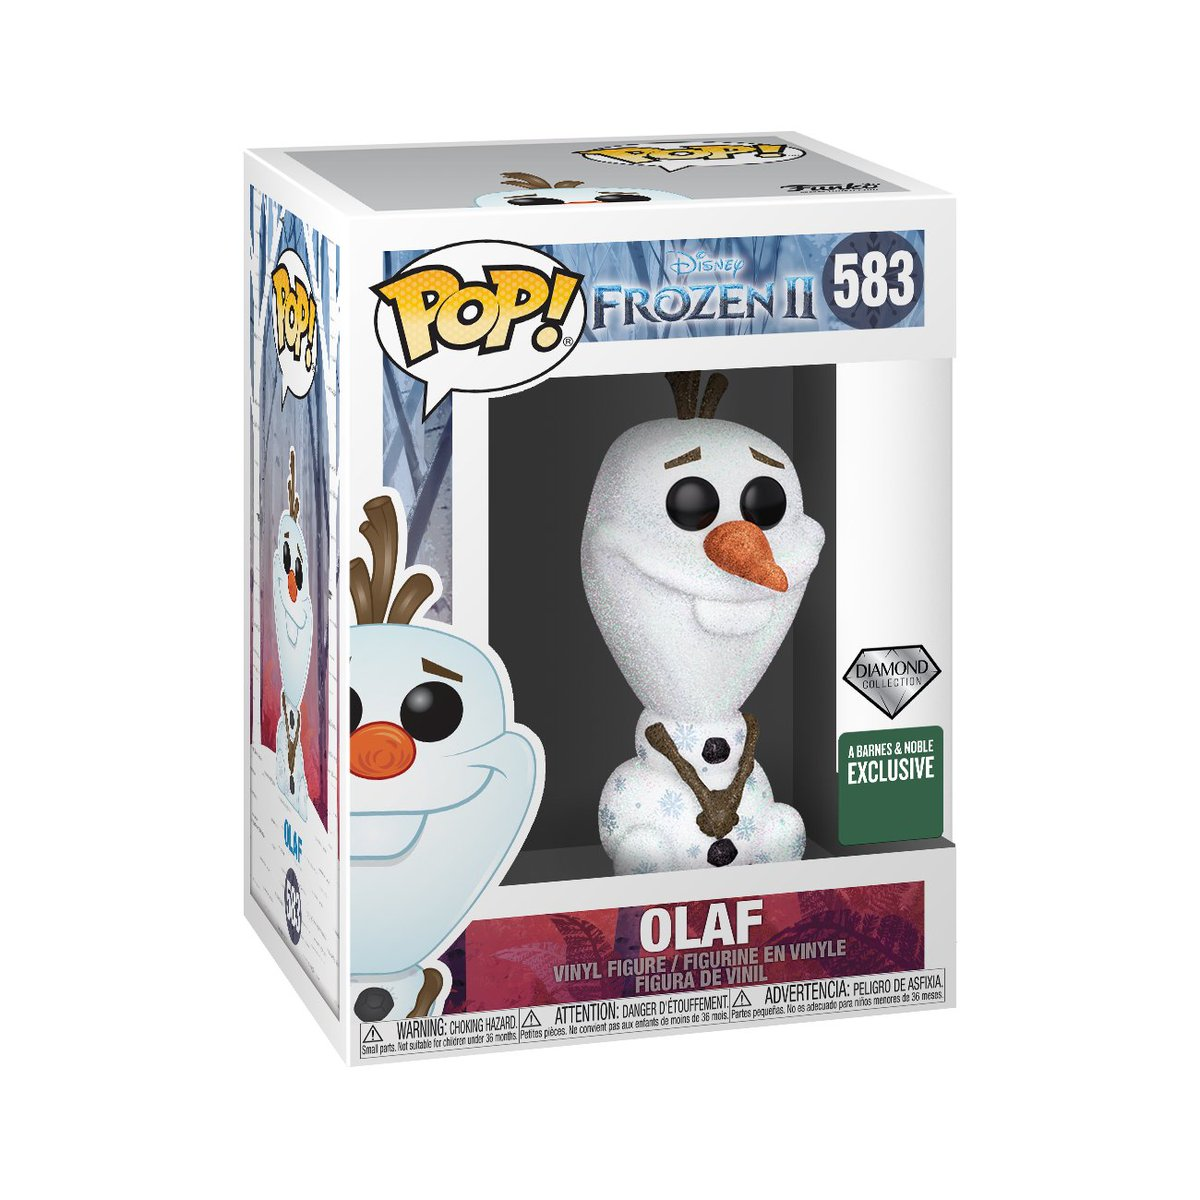 RT & follow @OriginalFunko for a chance to WIN a @BNBuzz Diamond Collection Olaf Pop!      #Funko #FunkoPop #Giveaway #Frozen  #Frozen2  #Exclusive #Disney<br>http://pic.twitter.com/2O45Y4MfE5